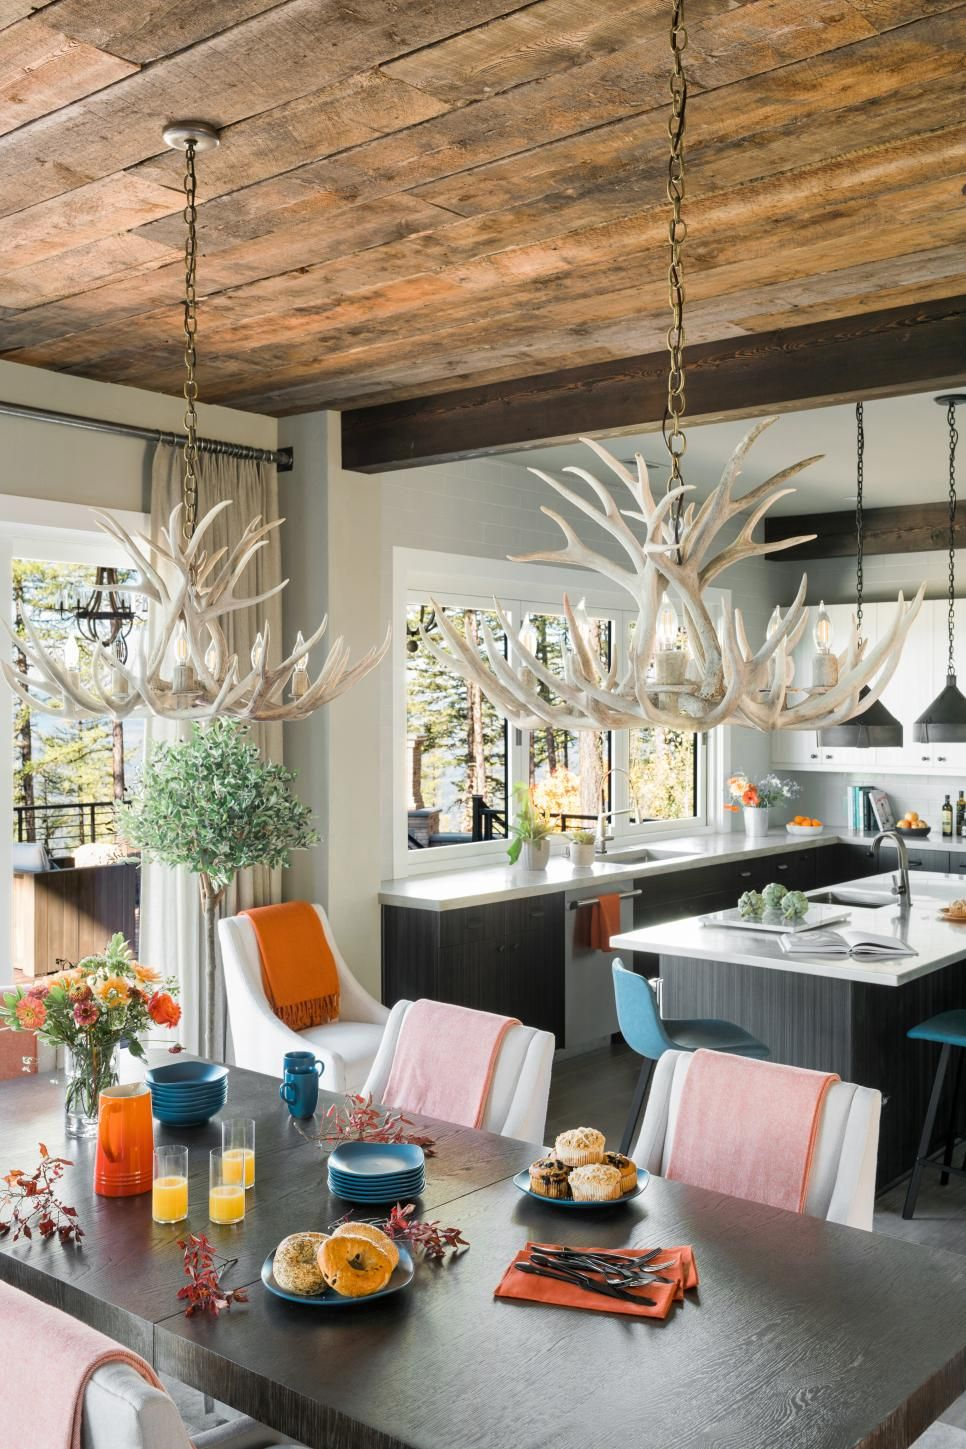 Hgtv Dream Home 2019 Dining Room Pictures Hgtv Dream Home 2019